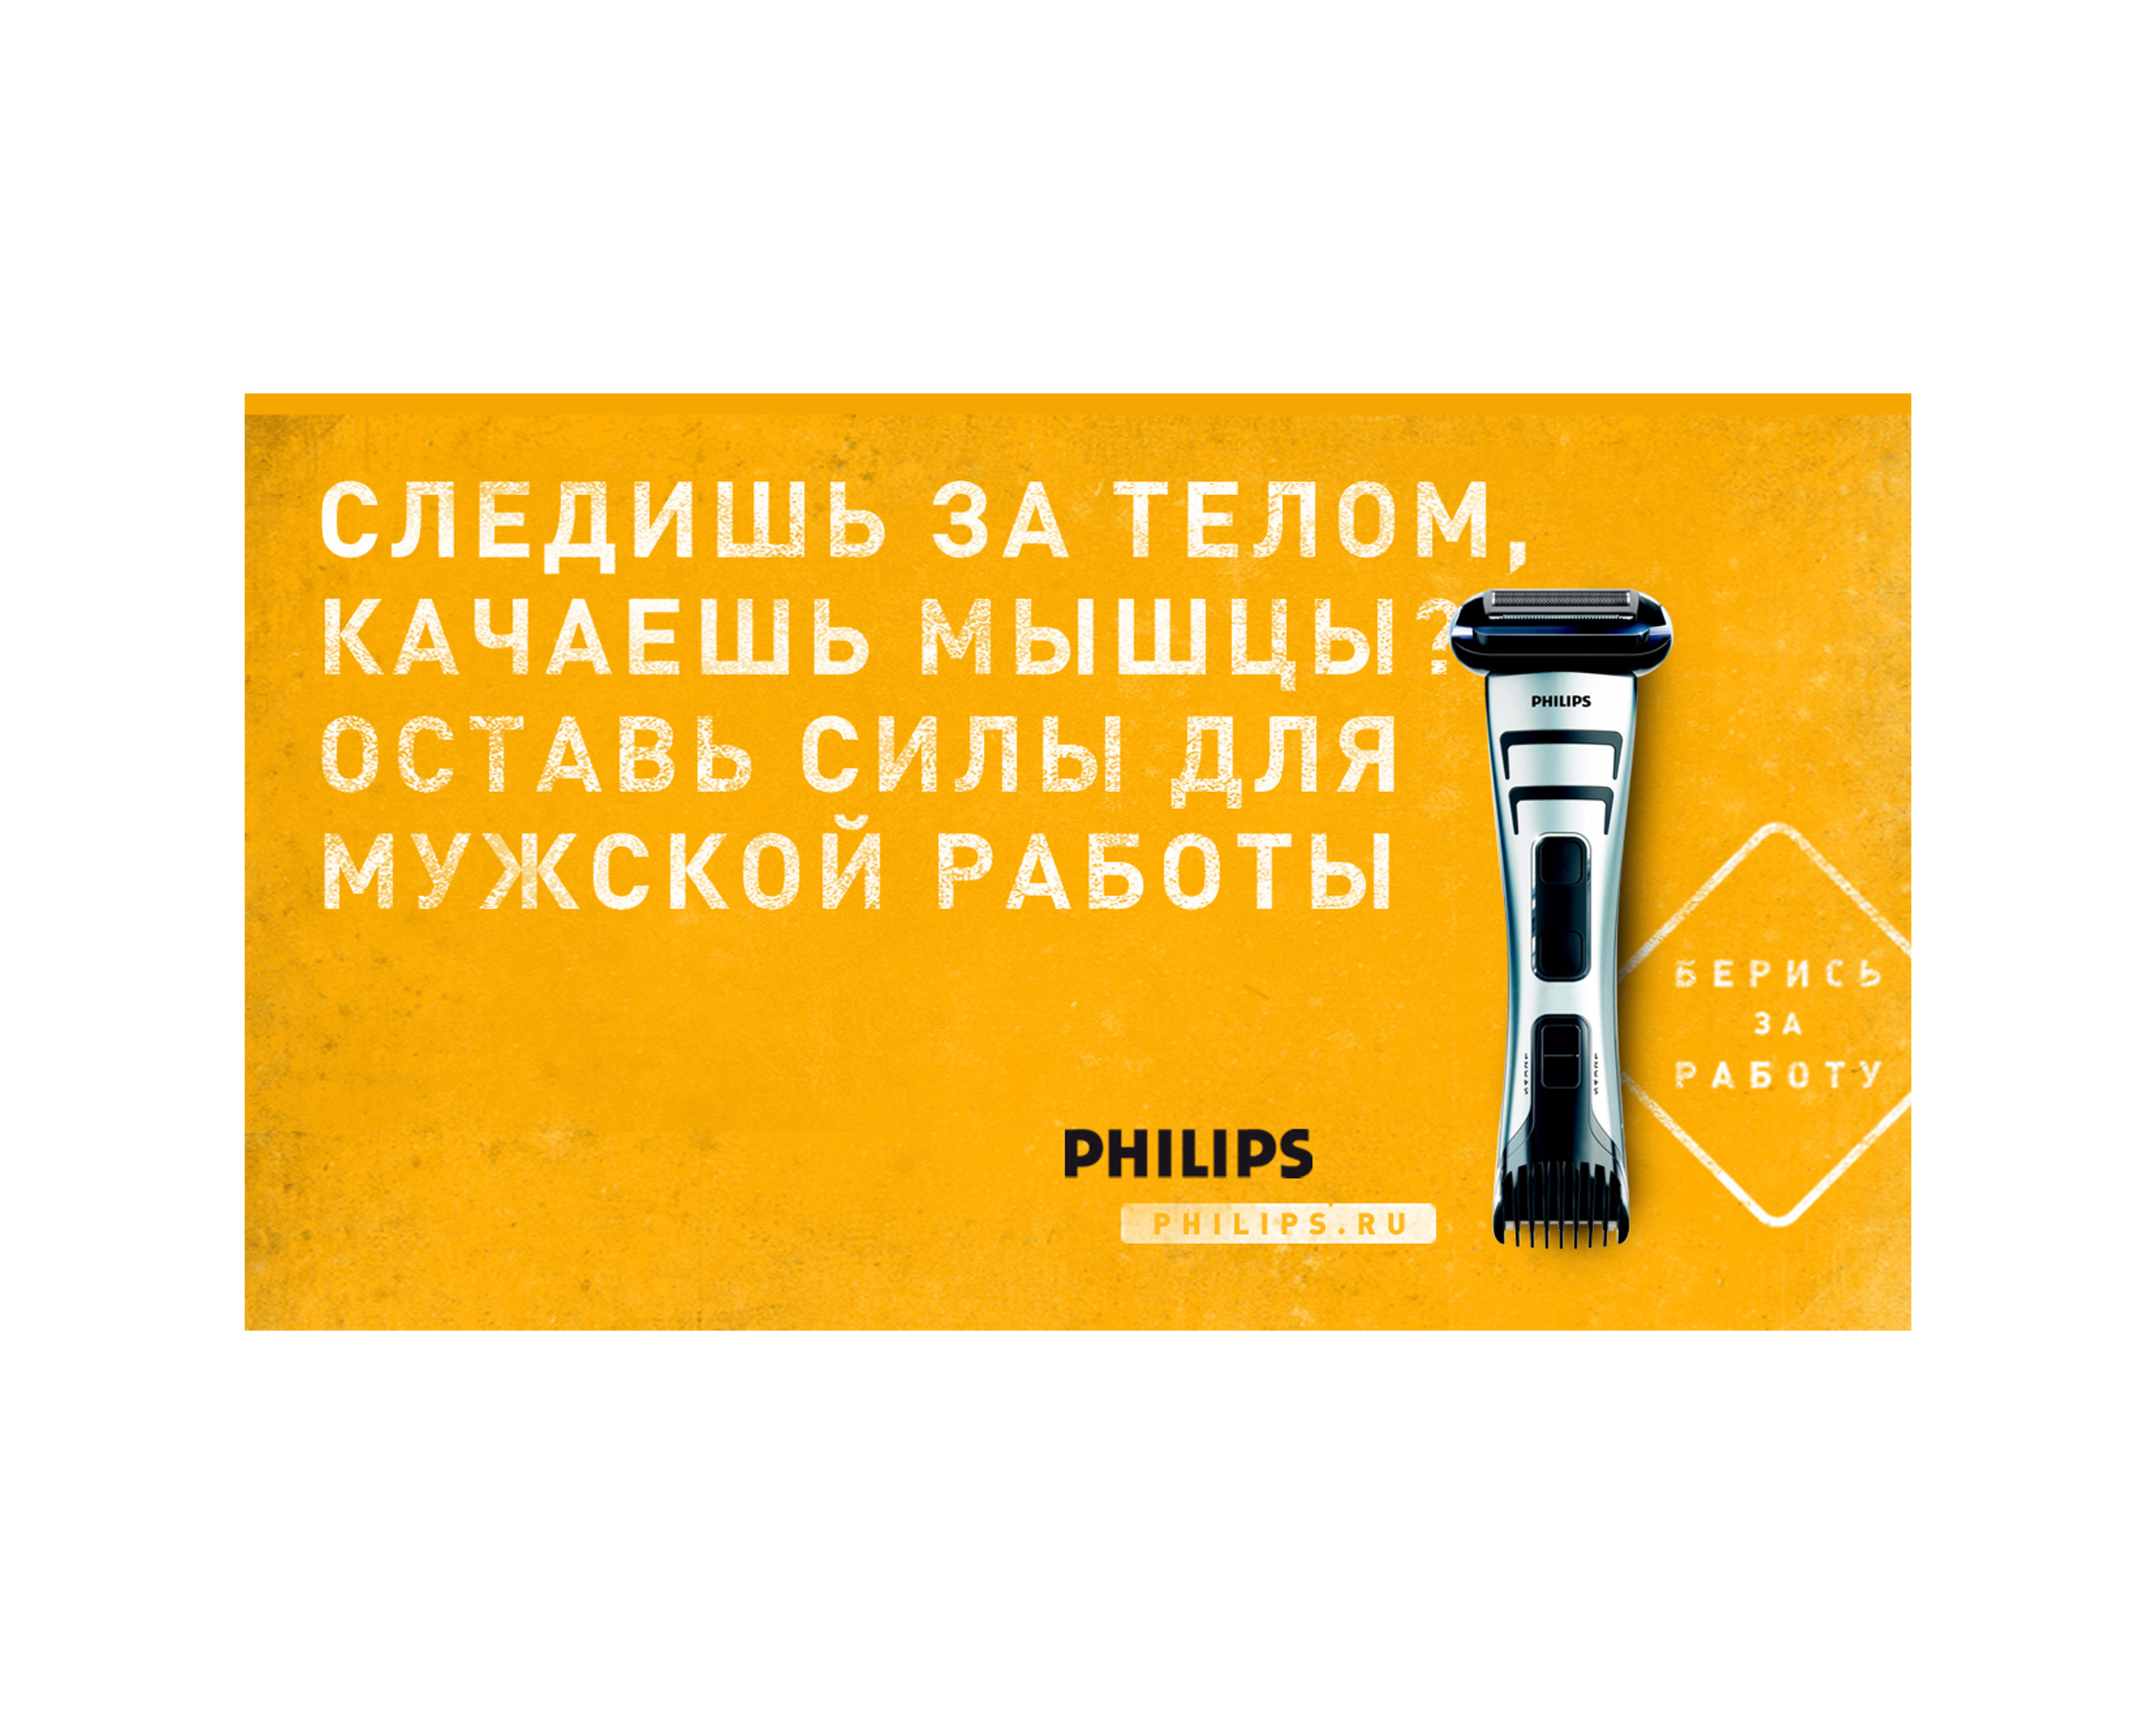 Philips pitch